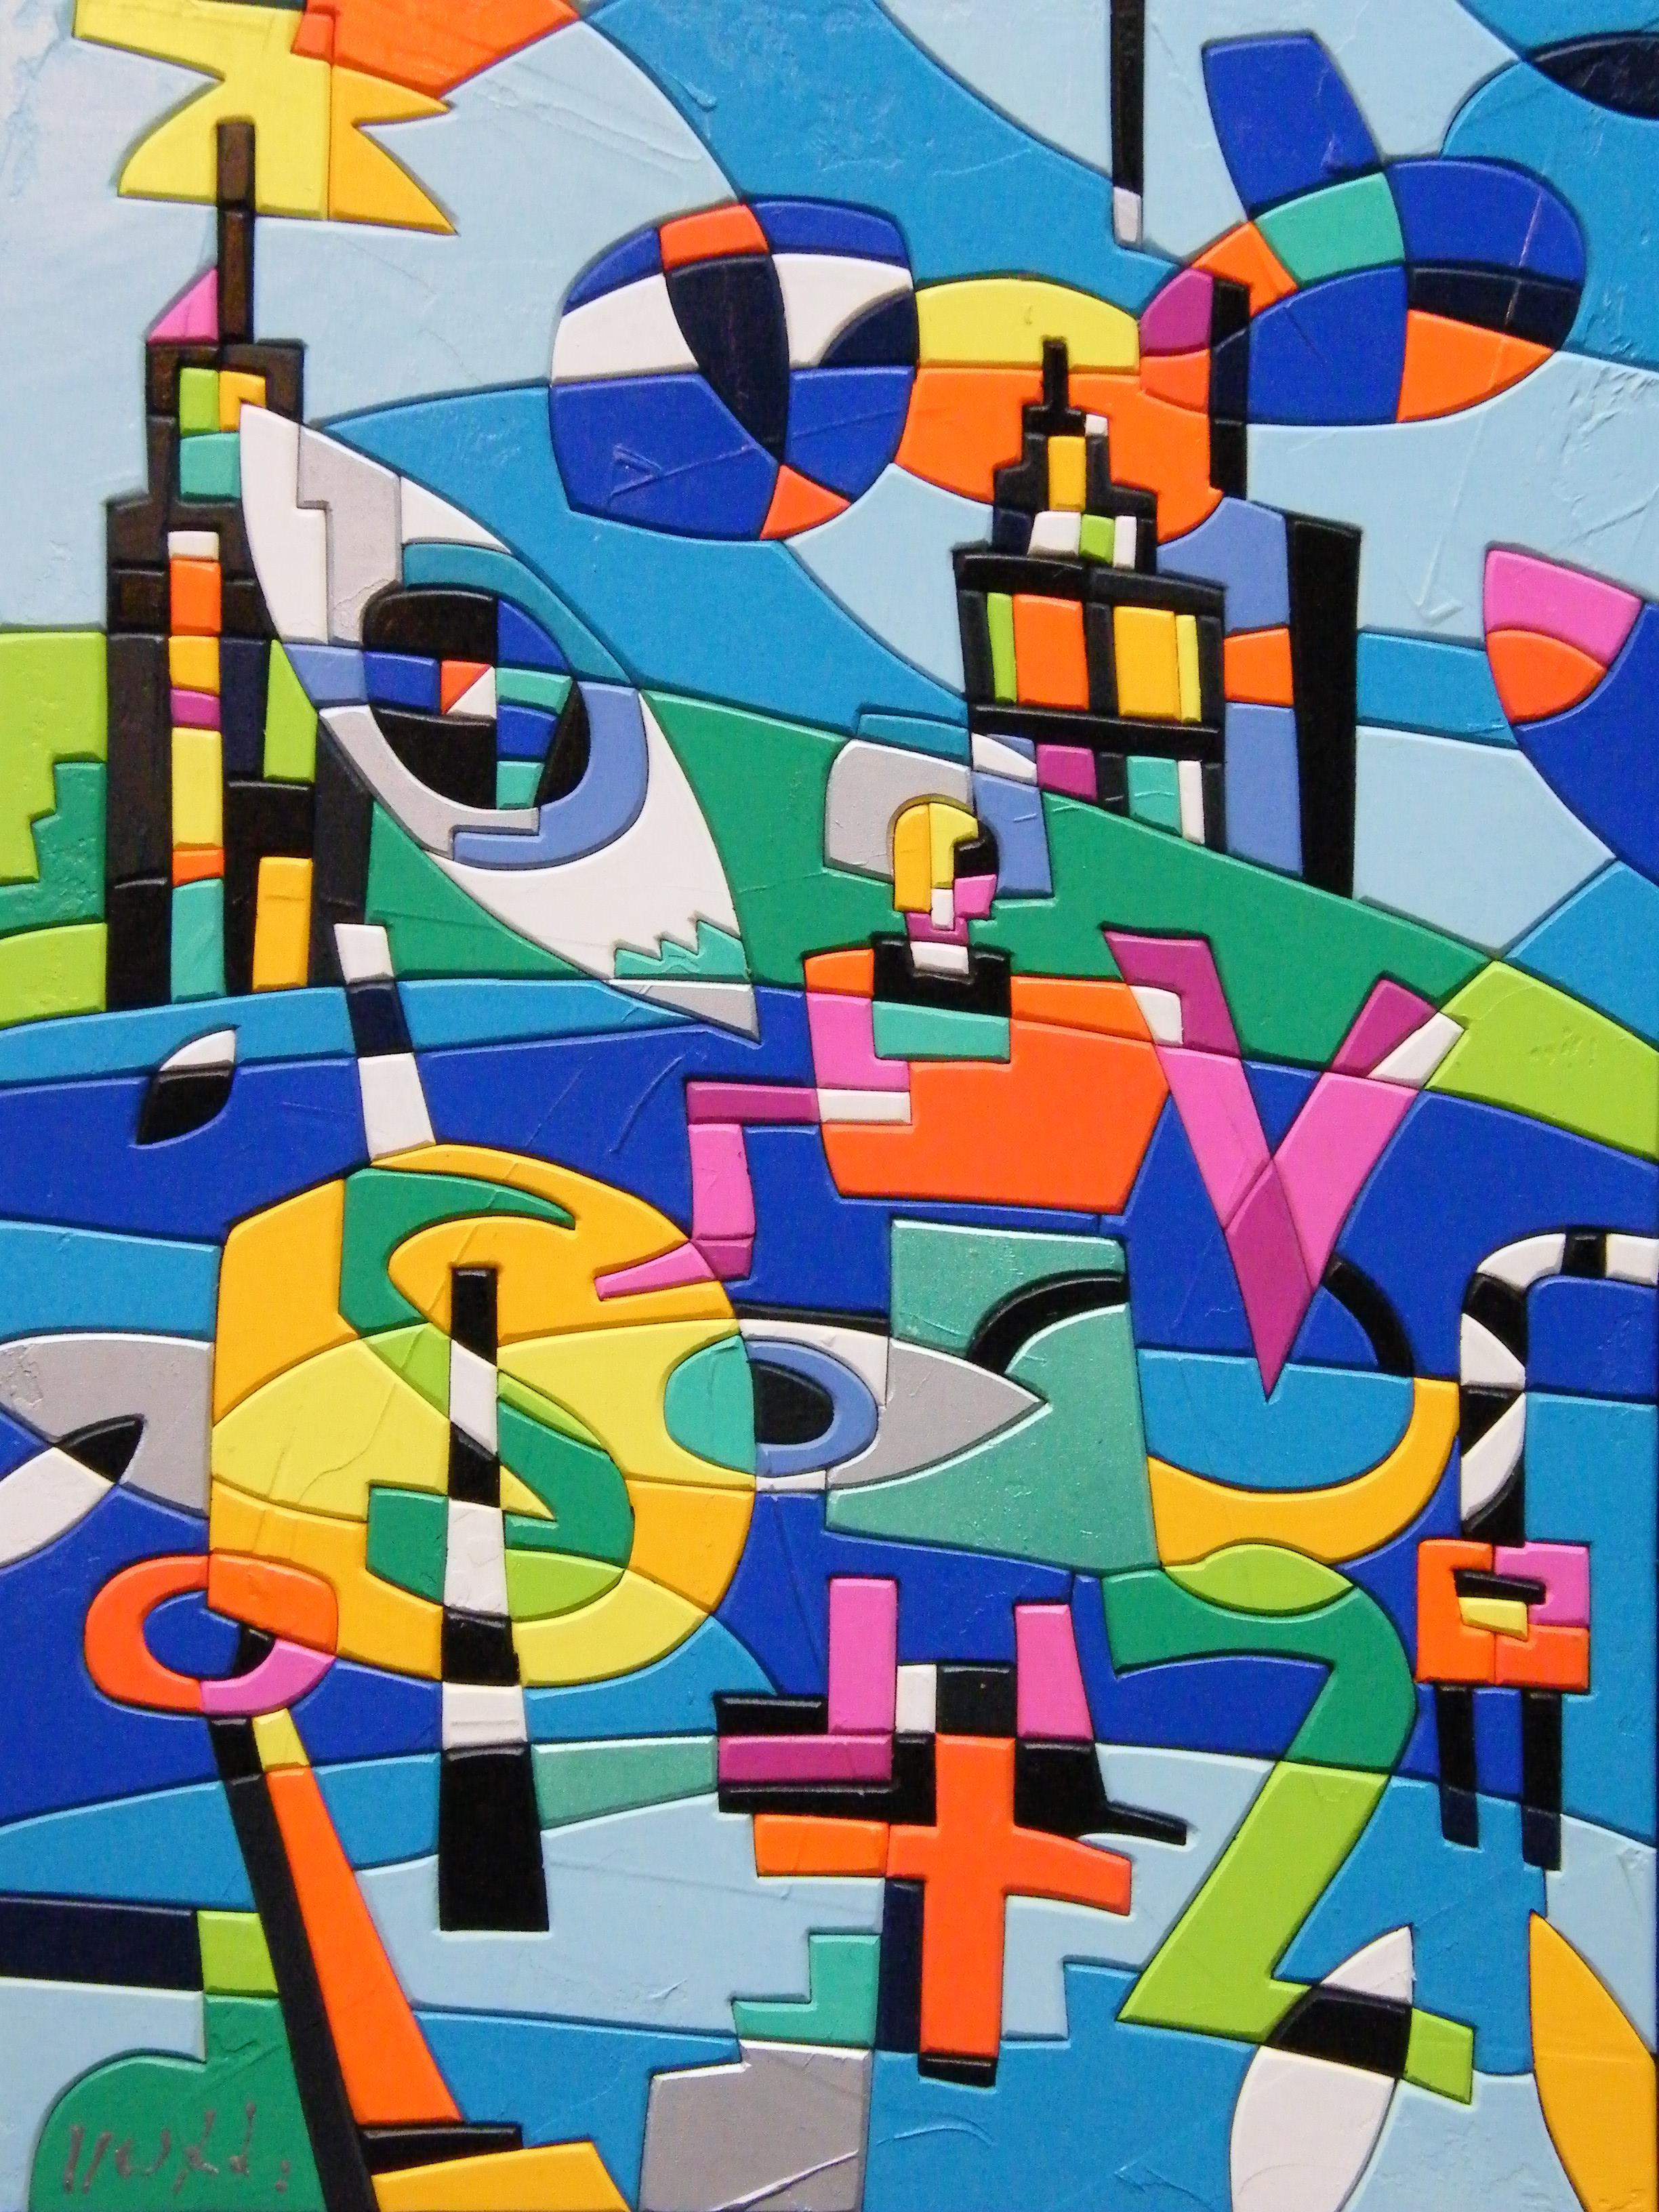 ''Urbano'' (40 x 30, acrylic colours on wood) is the painting created and chosen by Ugo Nespolo for the exhibition ''Homage to Lawrence Ferlinghetti'', Torino, Italy, 2010